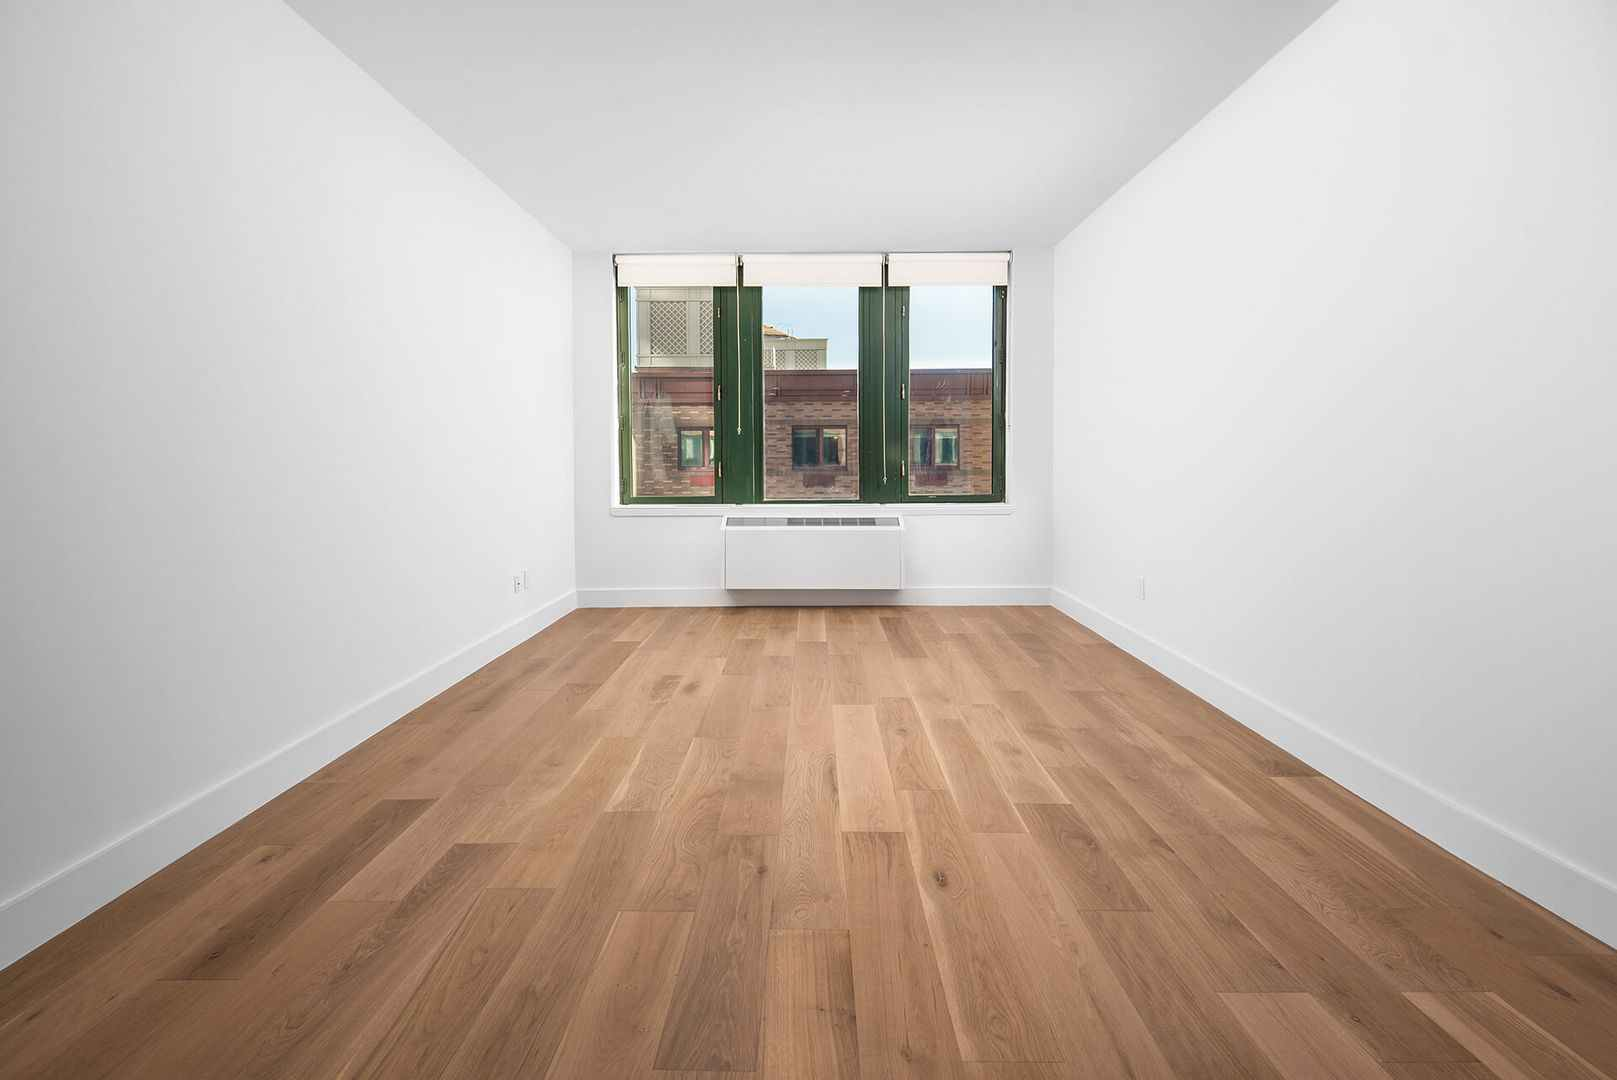 Empty room with wood-plank flooring